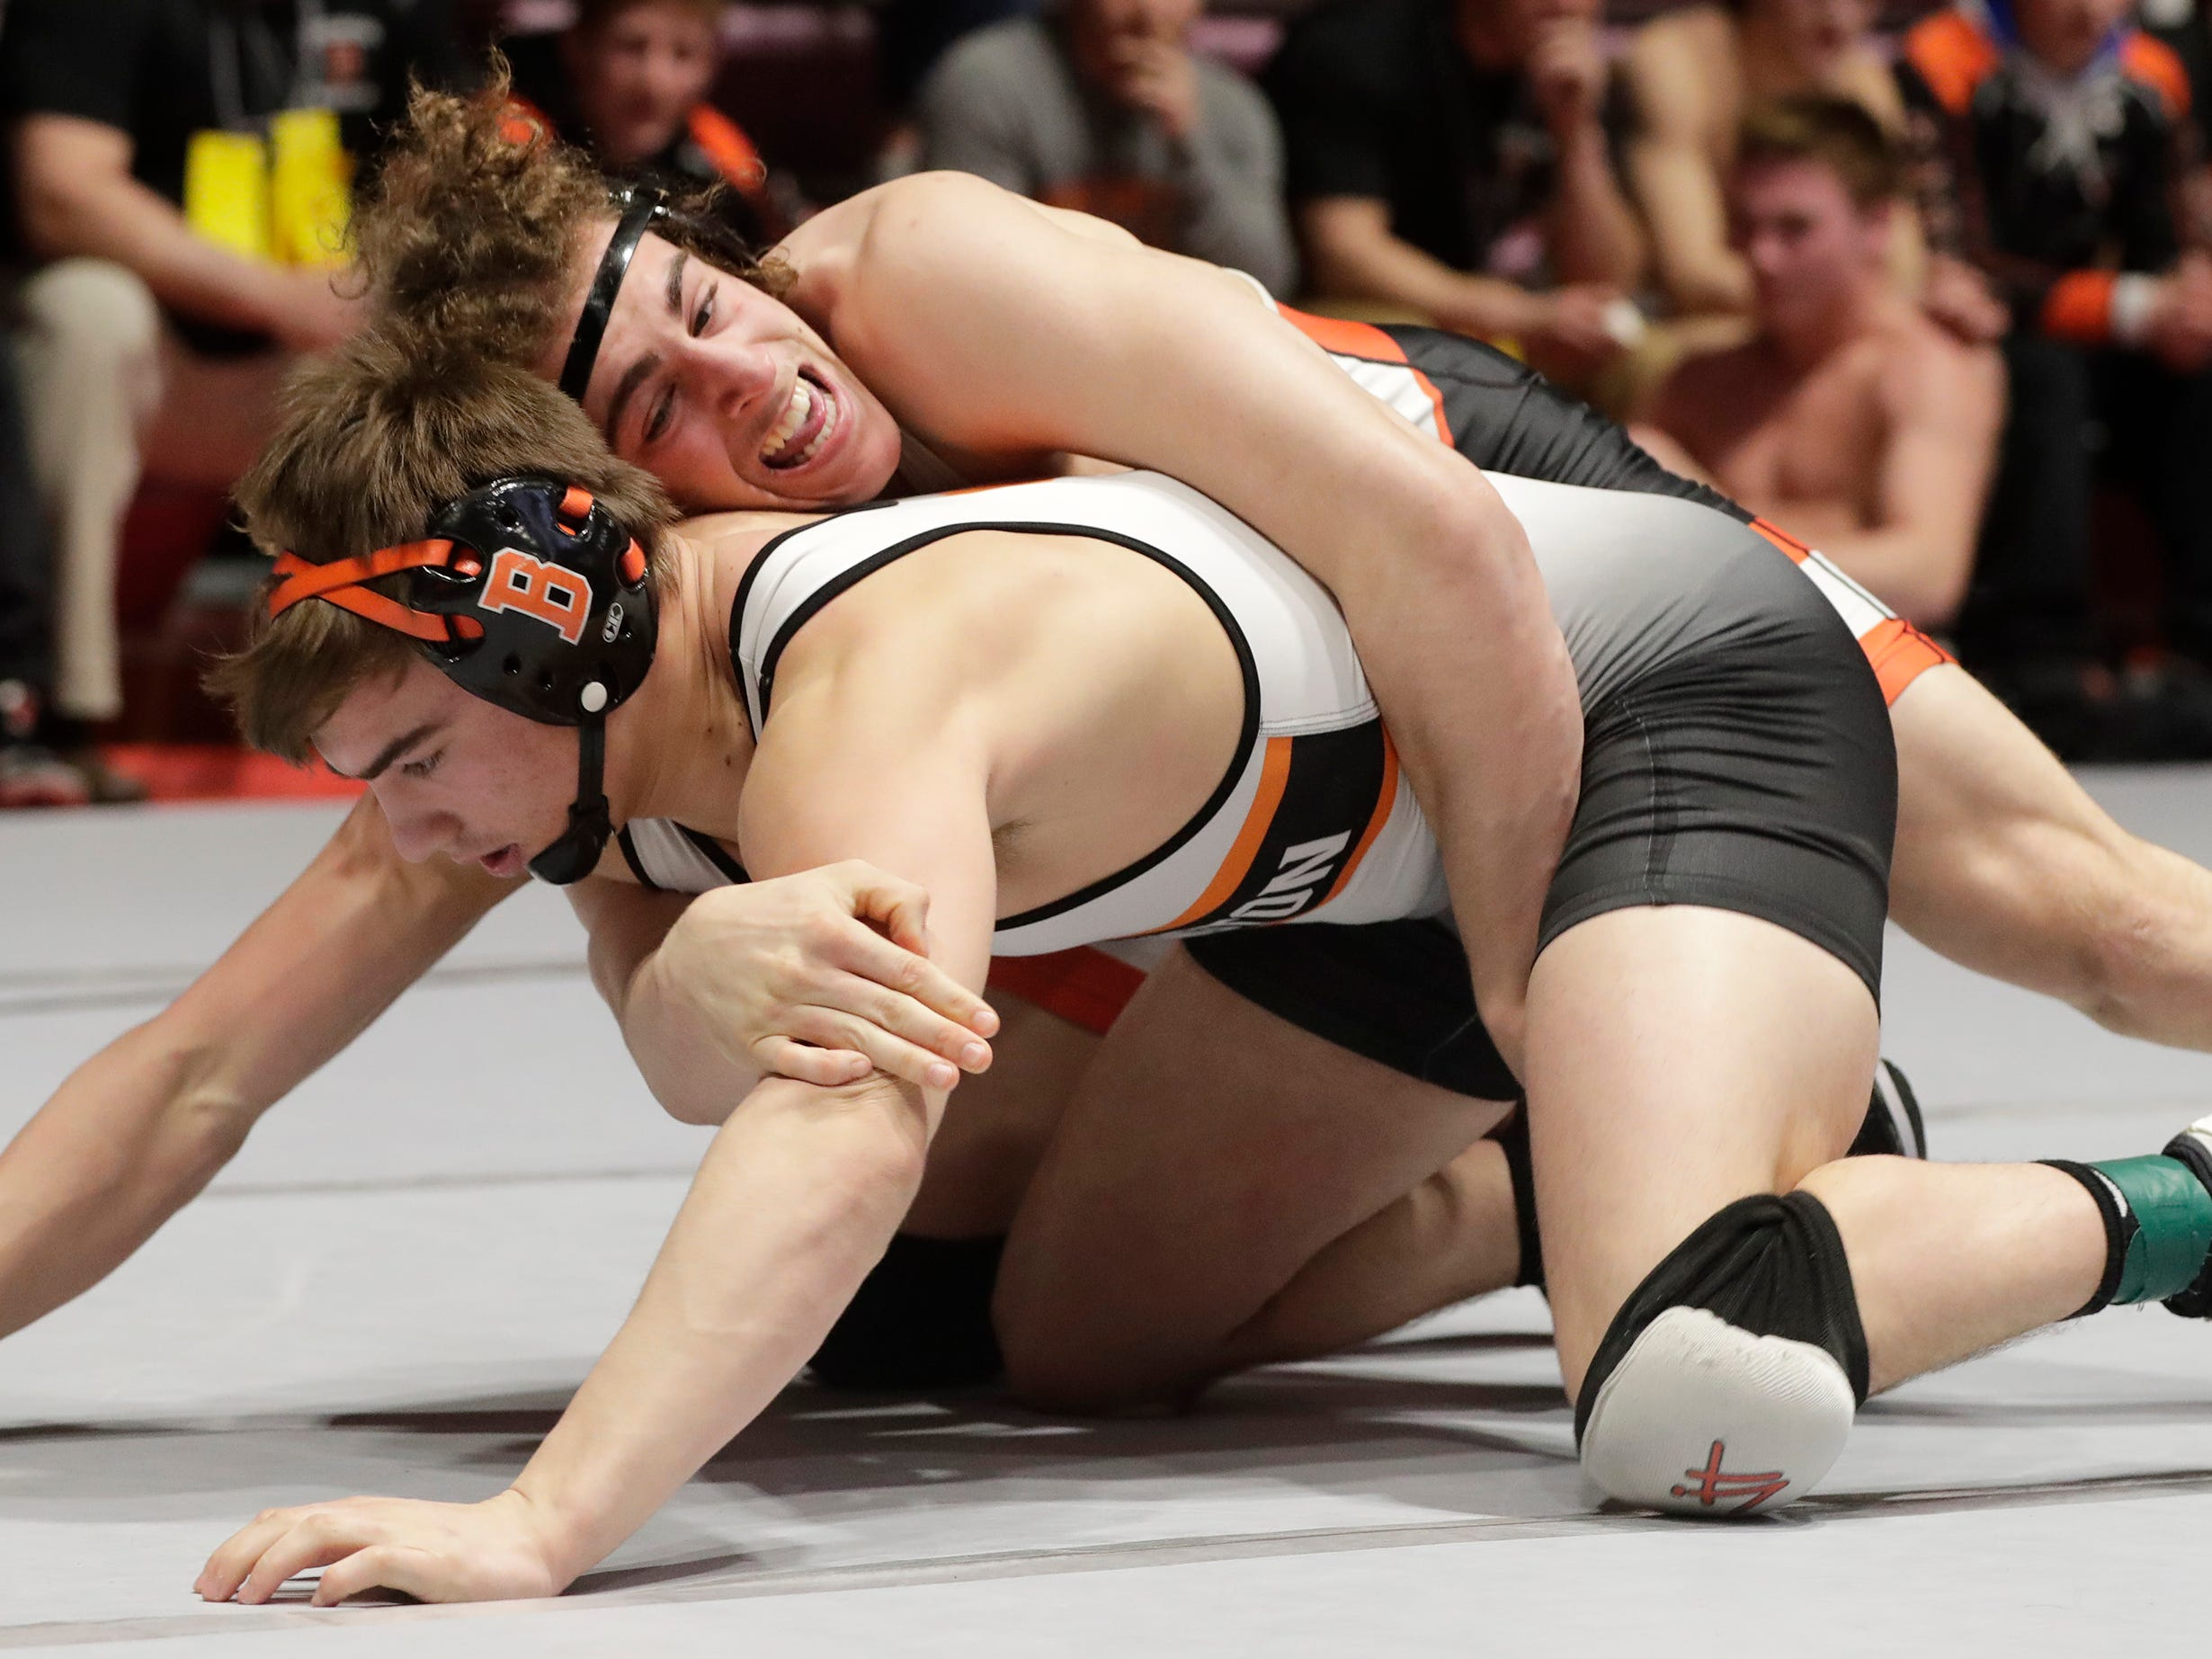 Bentley Schwanebeck-Ostermann, top, wrestles Burlington's Zach Wallace in a 182-pound match, Friday, March 1, 2019, in Madison, Wis.